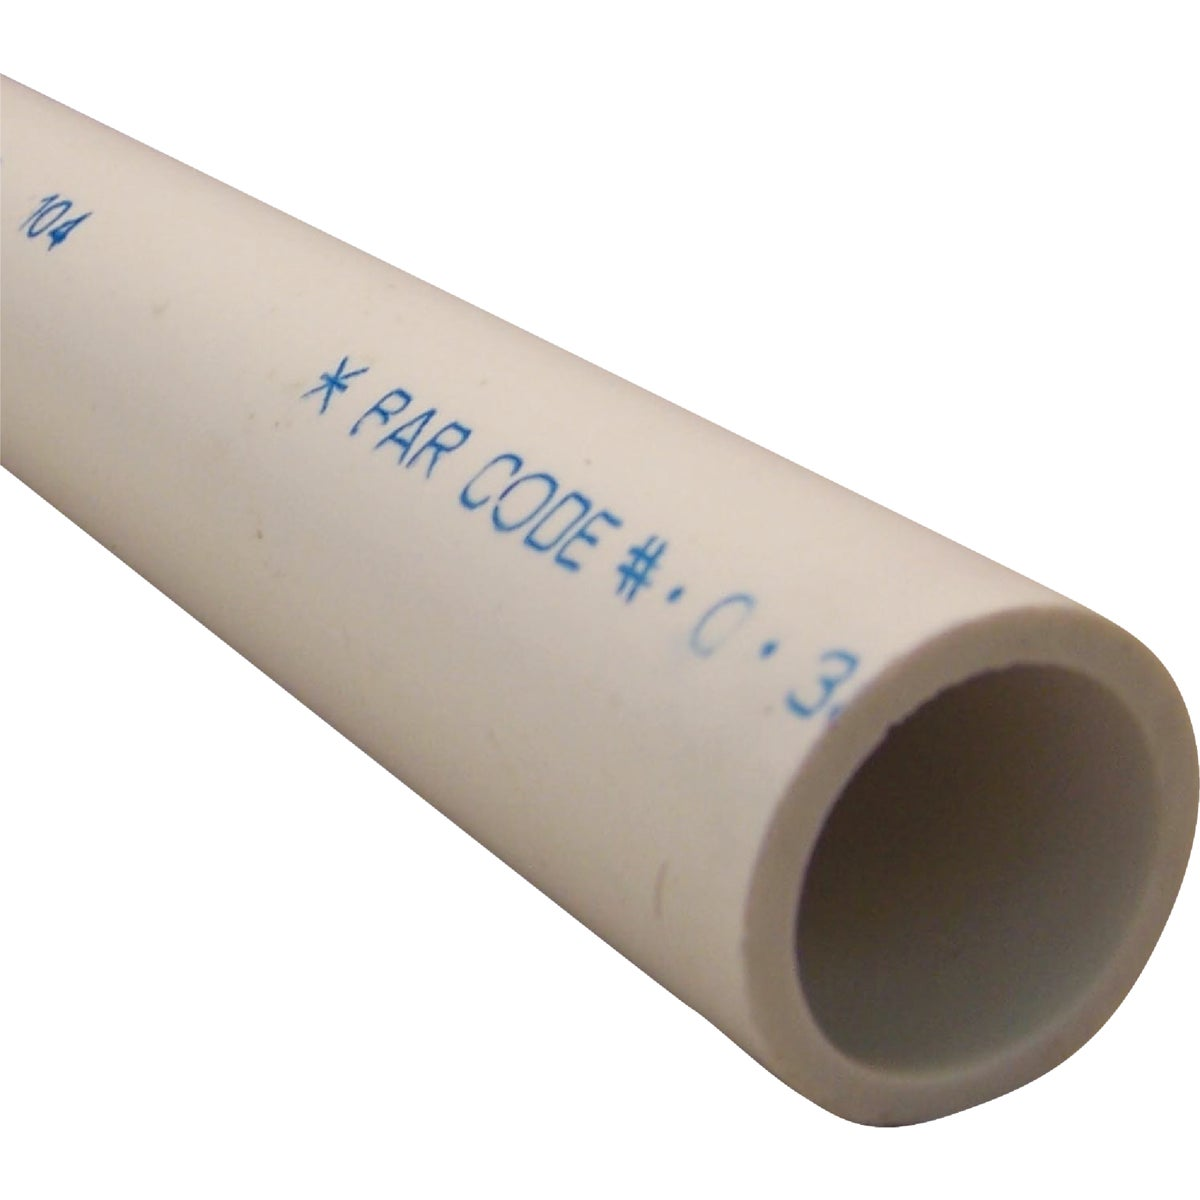 1-1/4X5' SCH 40 PVC PIPE - 315117 by Genova Inc